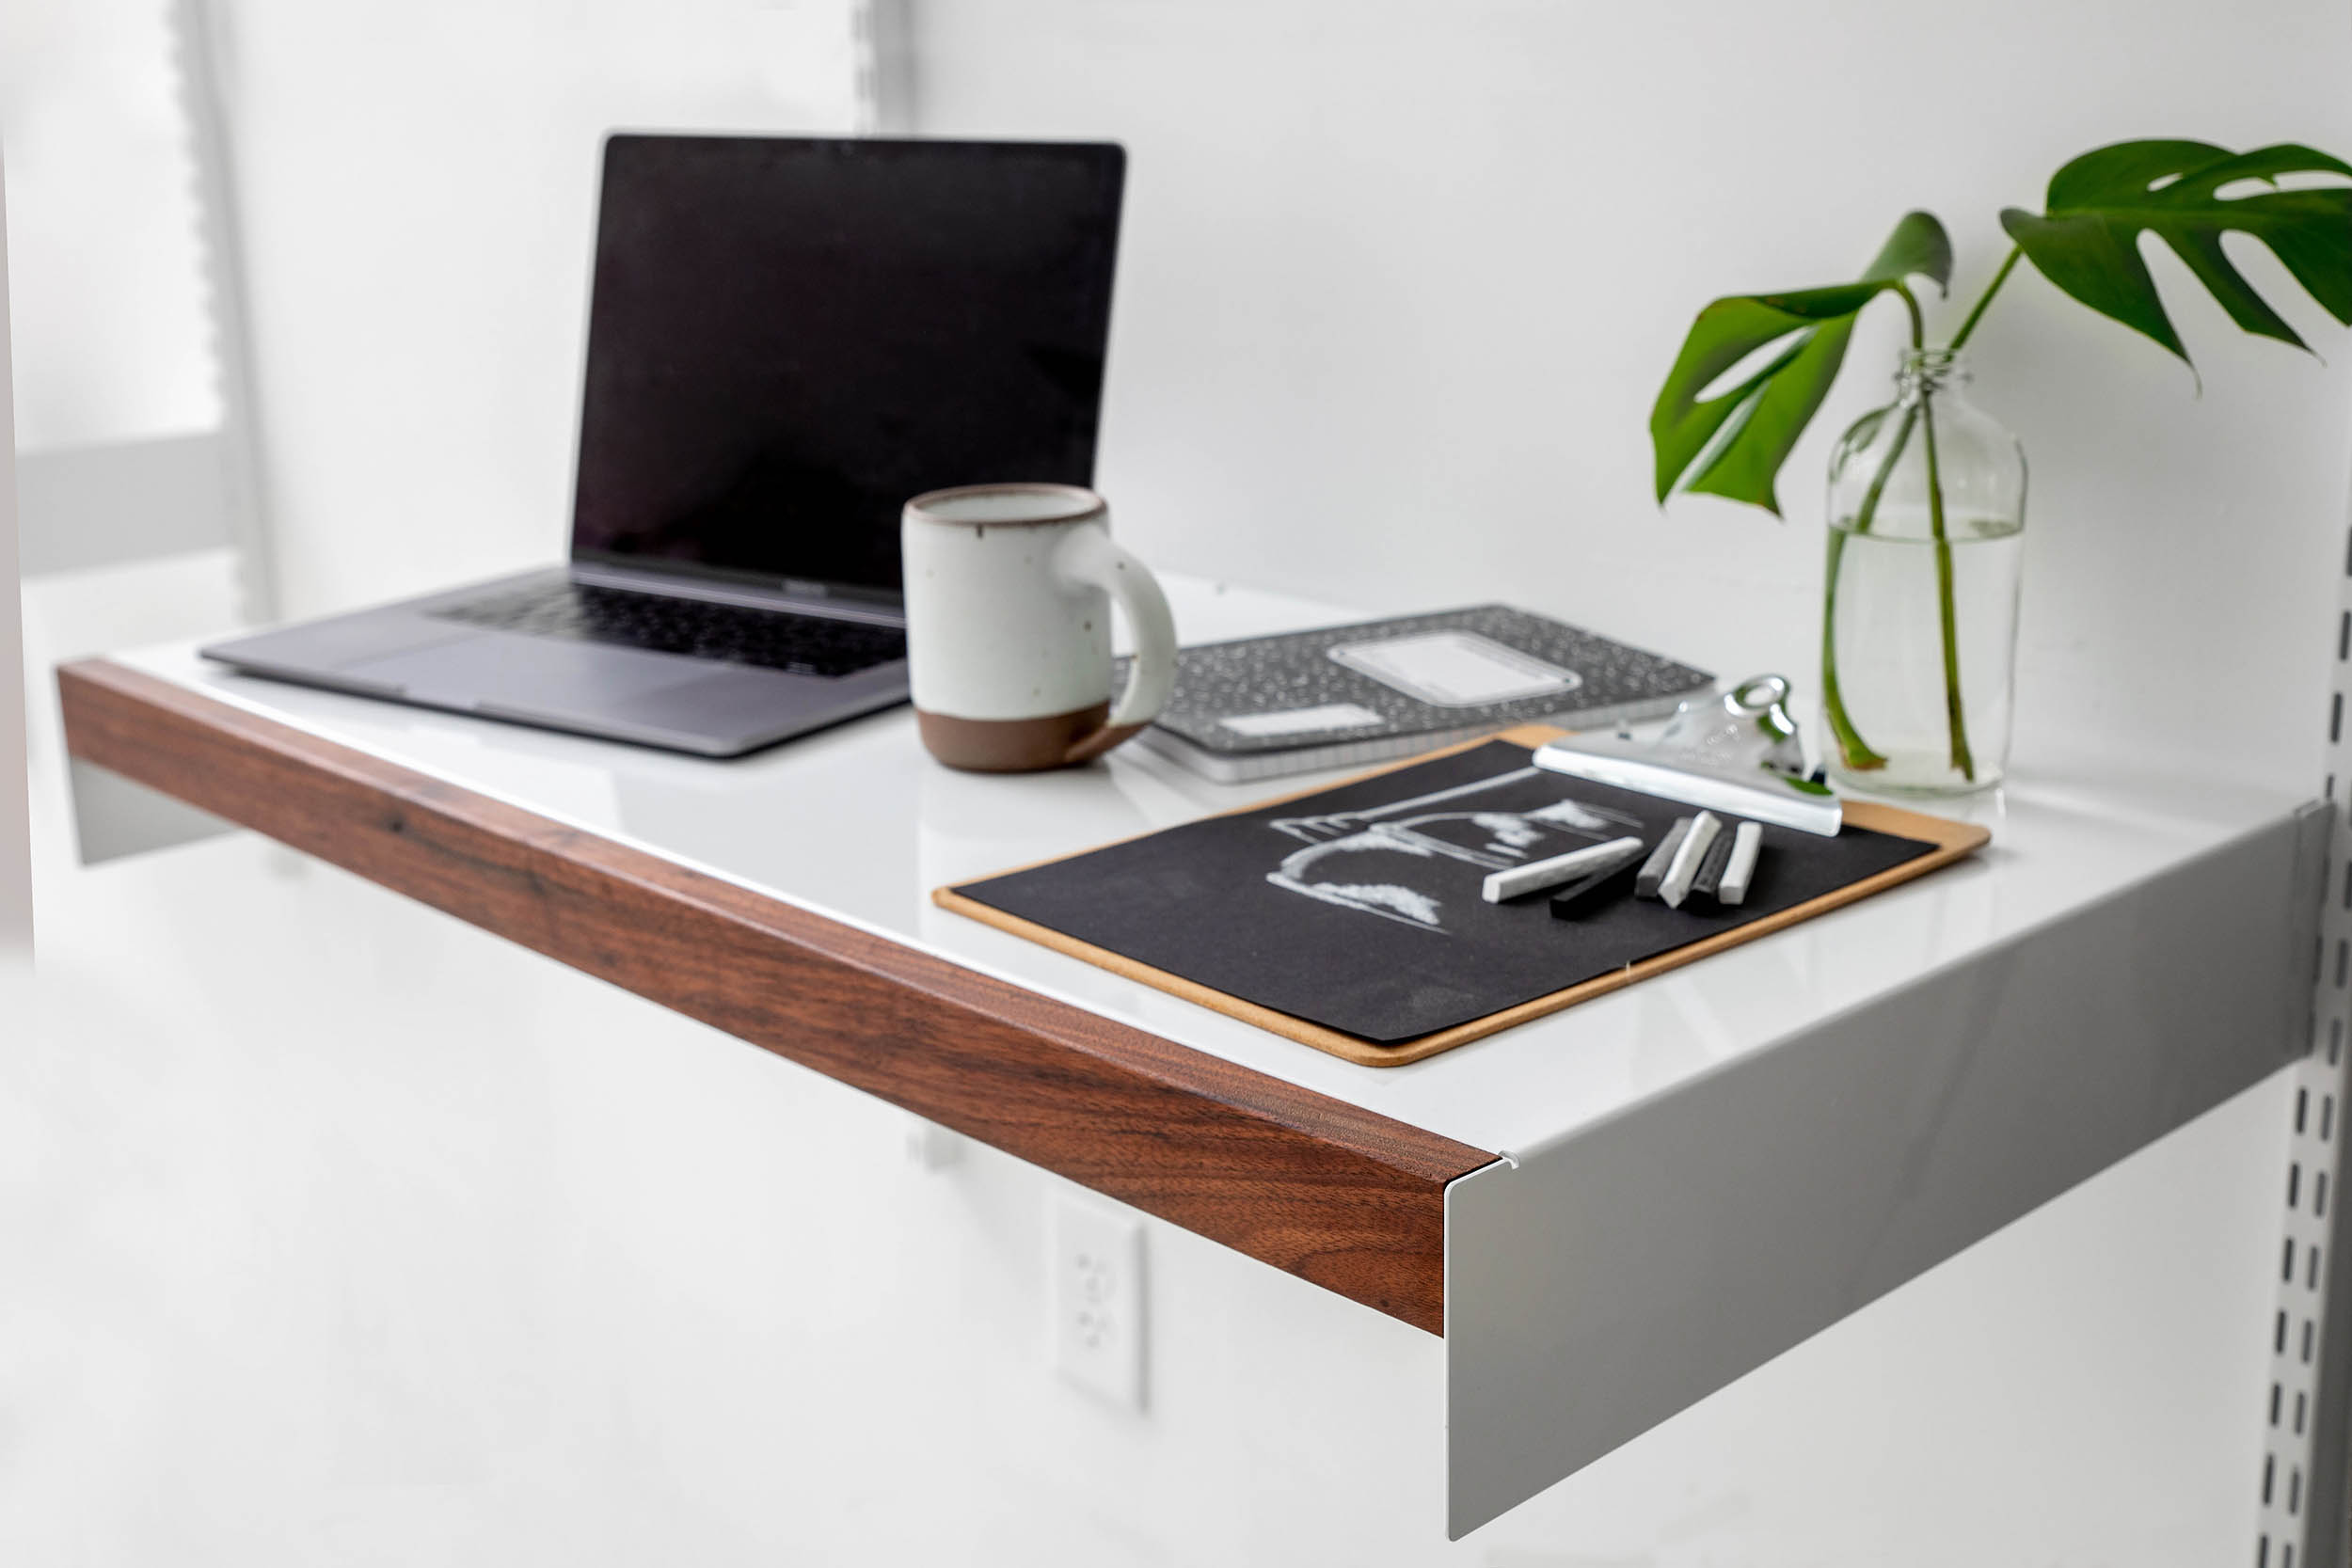 Picture of: Introducing The Wall Mounted Desk By Kernel Modular Issuewire